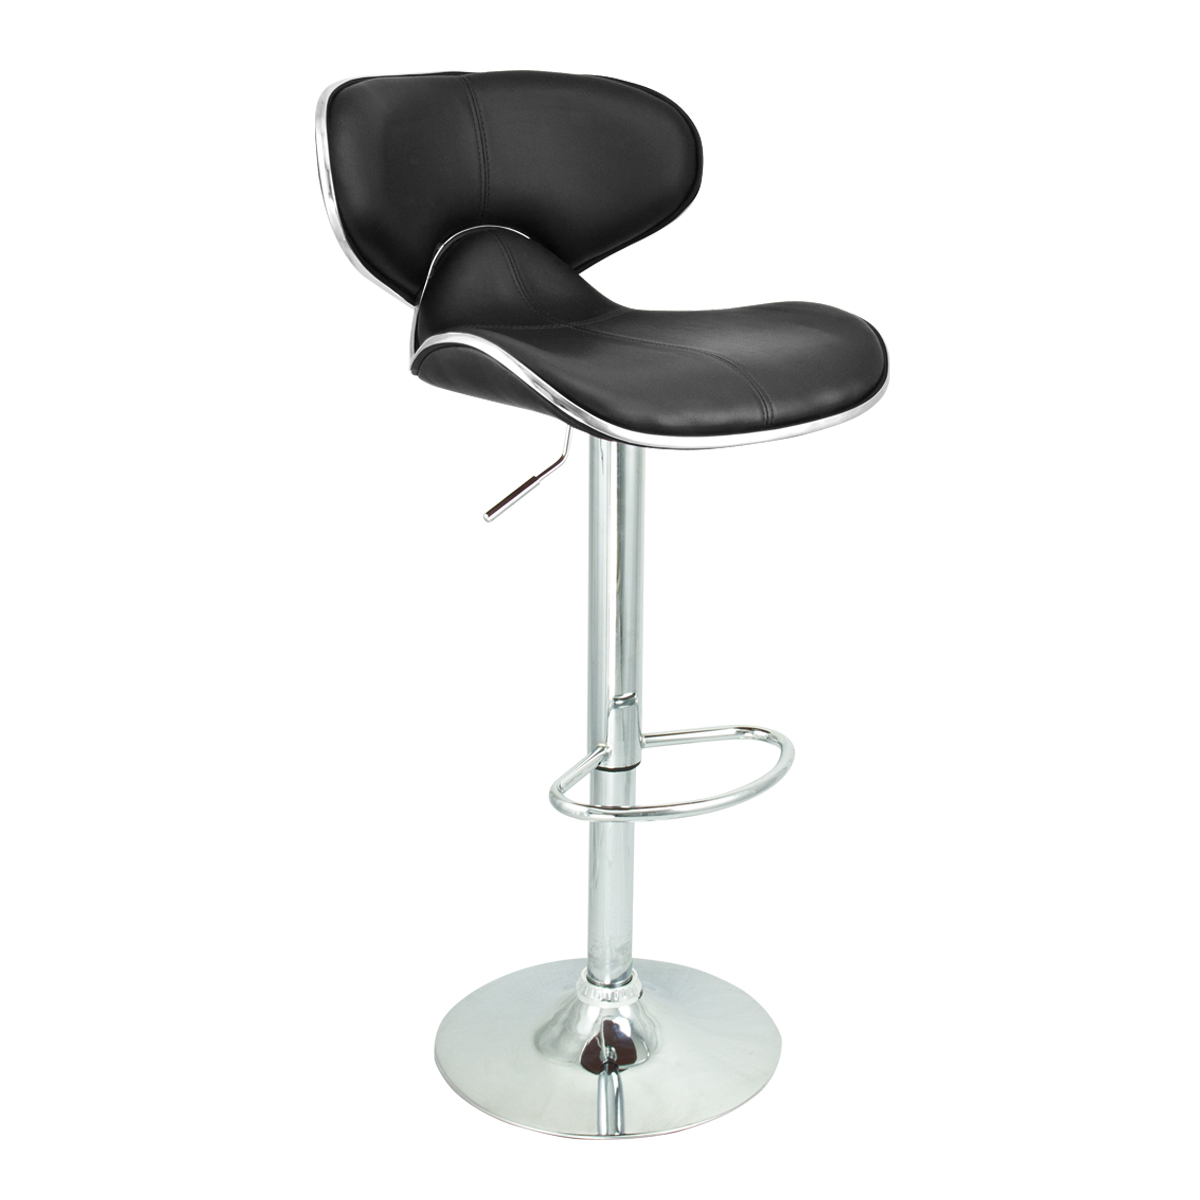 Modern Black Barstool 6 Swivel Elegant PU Leather Adjustable Hydraulic Bar St